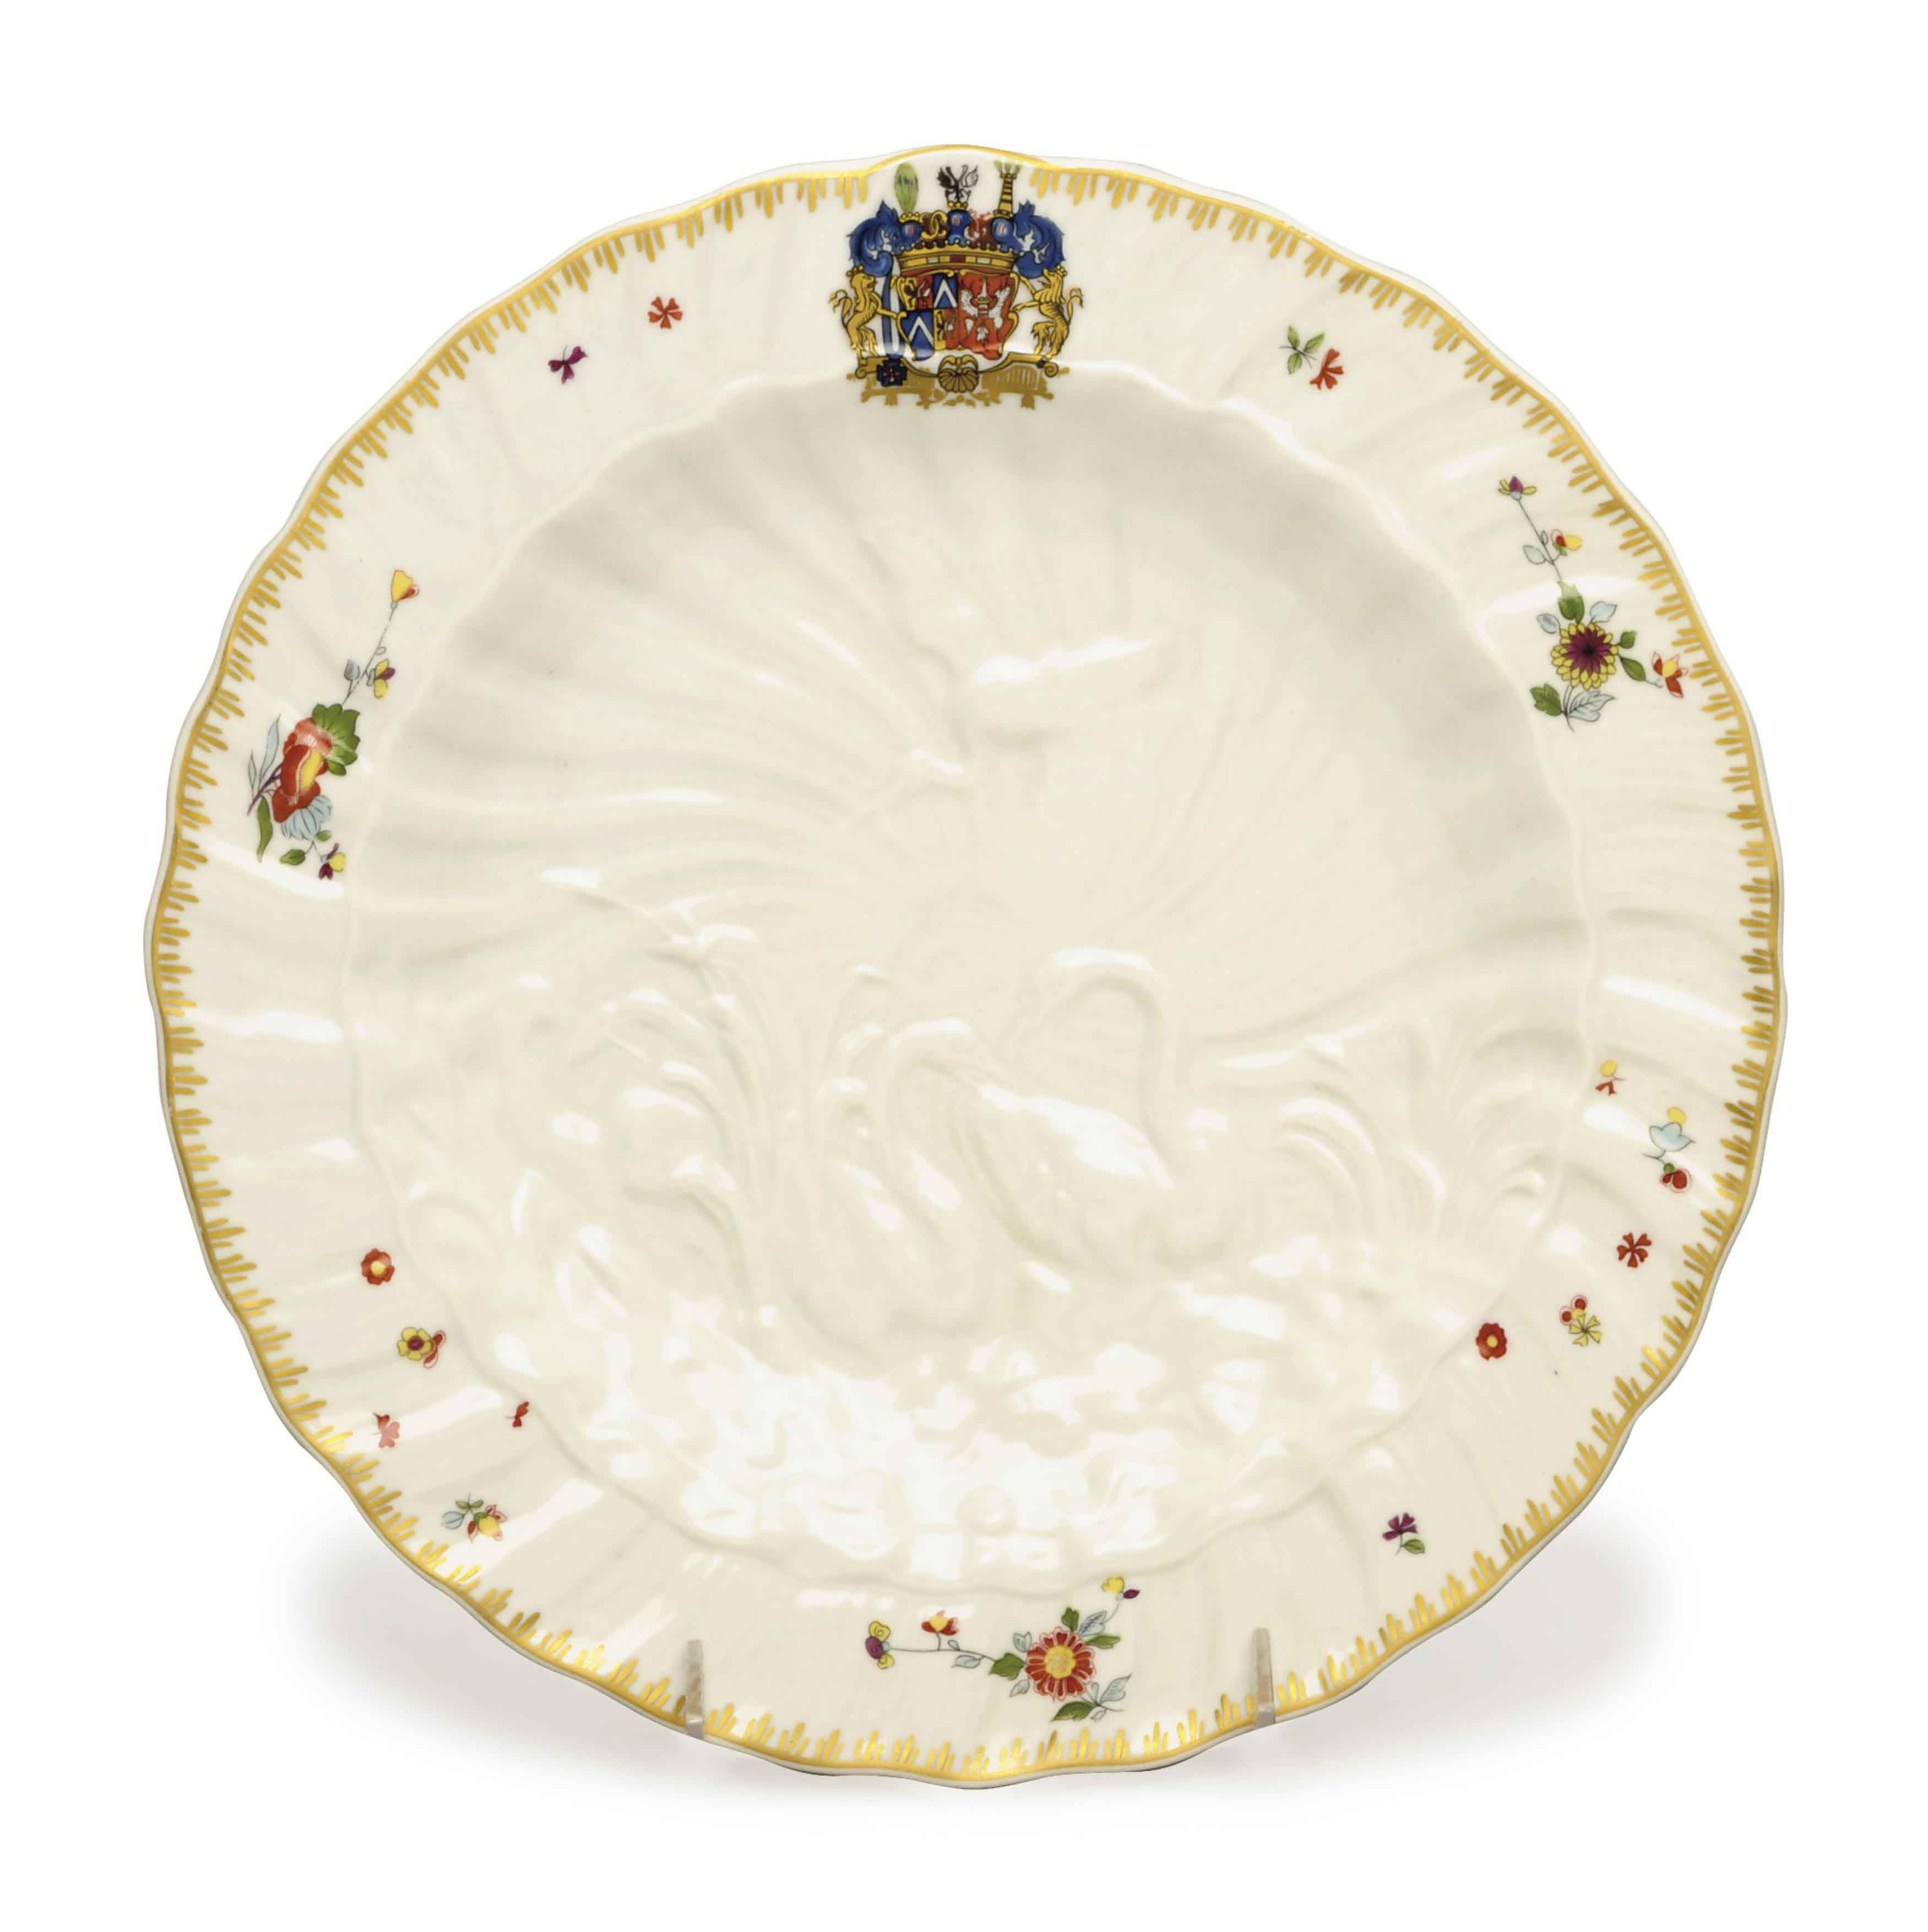 A SET OF EIGHT PORTUGESE PORCELAIN PLATES IN THE 'SWAN SERVICE' PATTERN,